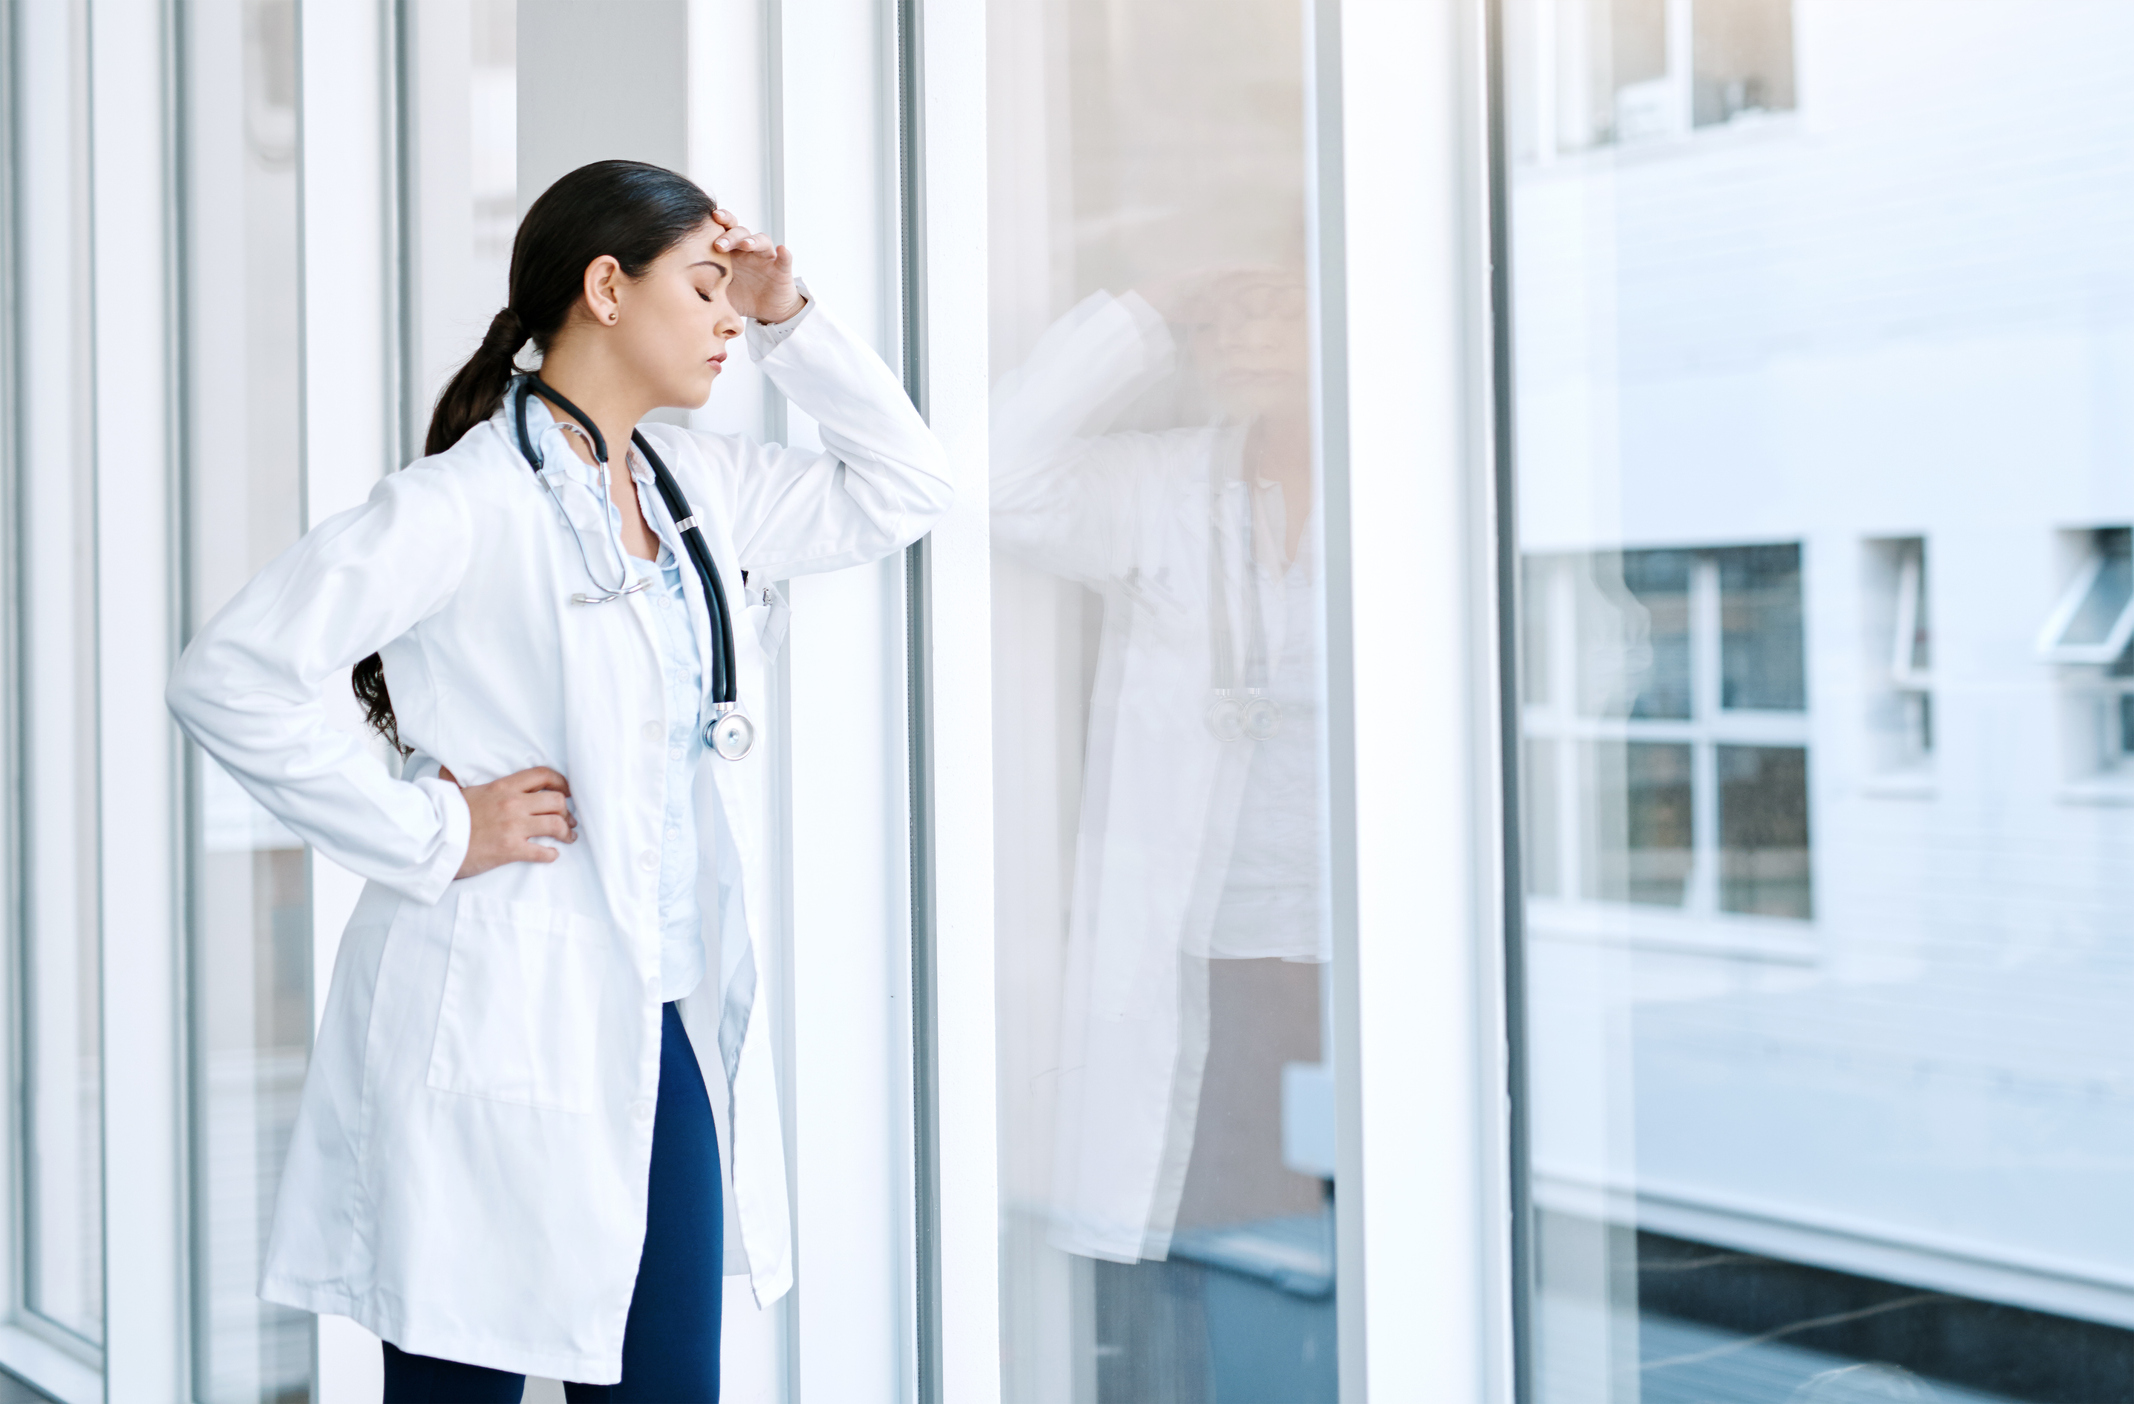 Five Ways Healthcare Organizations Can Confront Burnout and Build Cultures of Well-Being and Resiliency